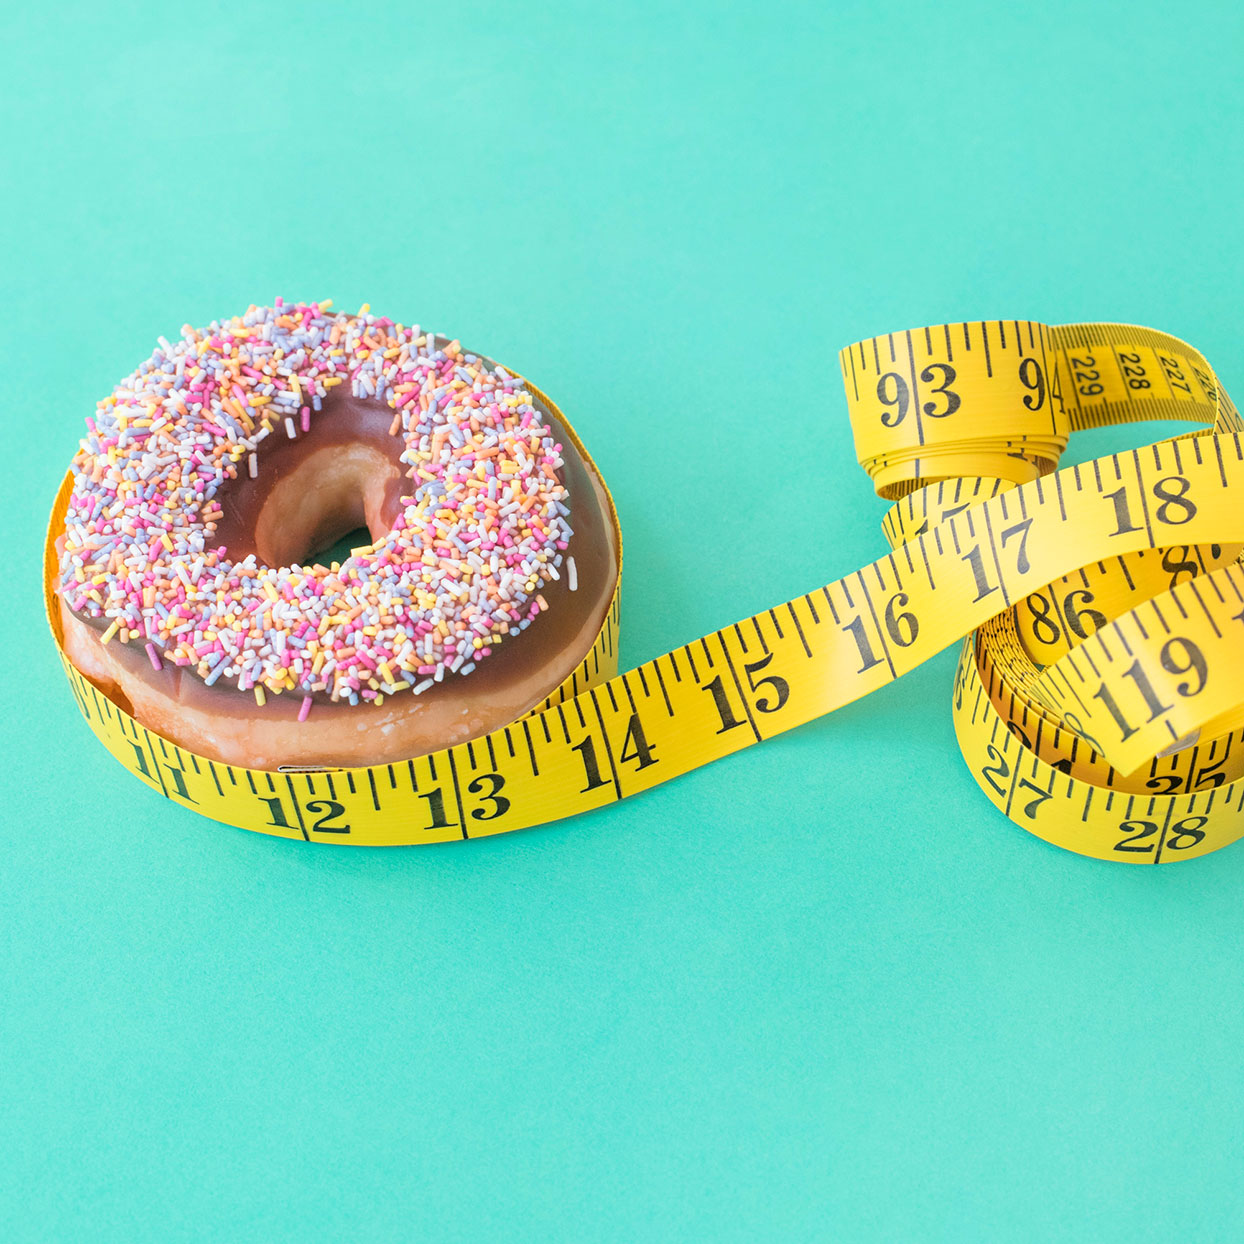 Donut with measuring tape